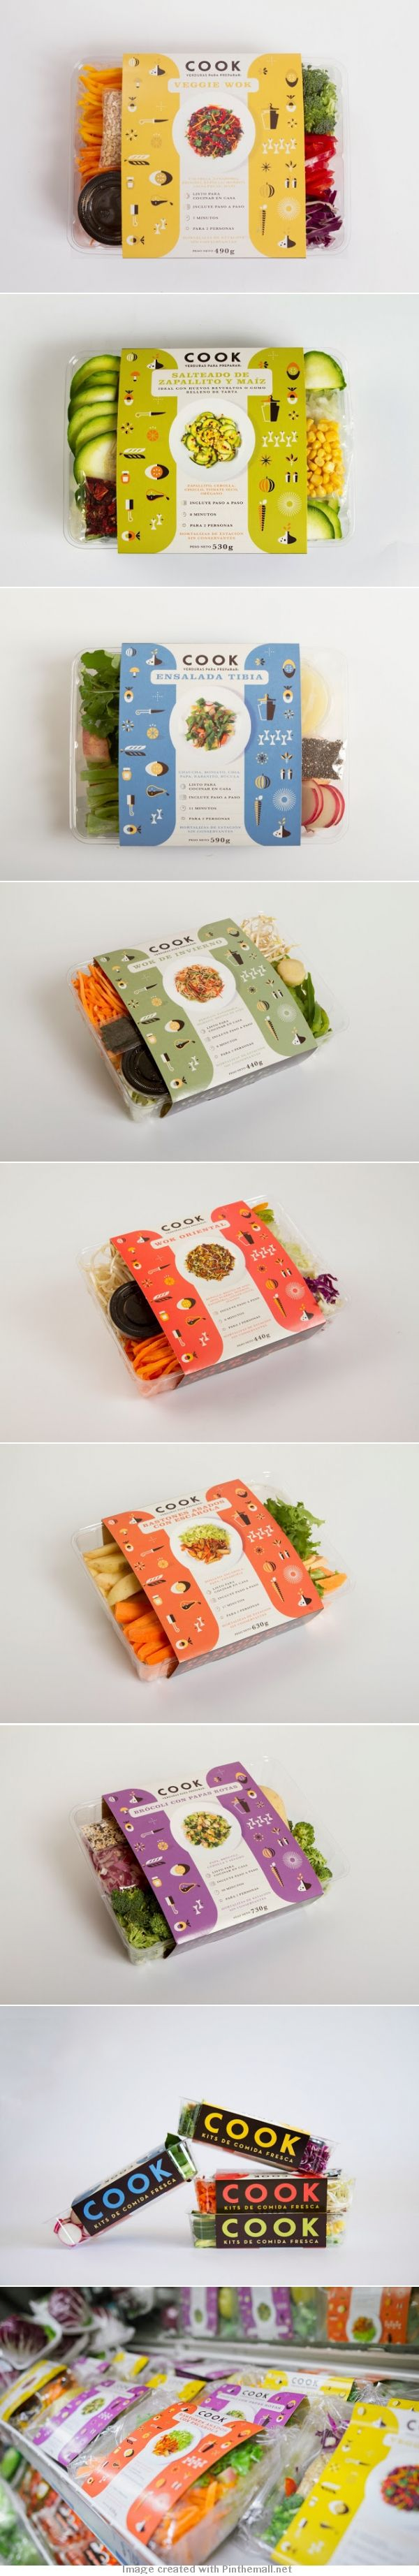 [ lovely #packaging ] Cook (Uruguay) does an outstanding job of having packaging that pops and stands out. #Design #Eat